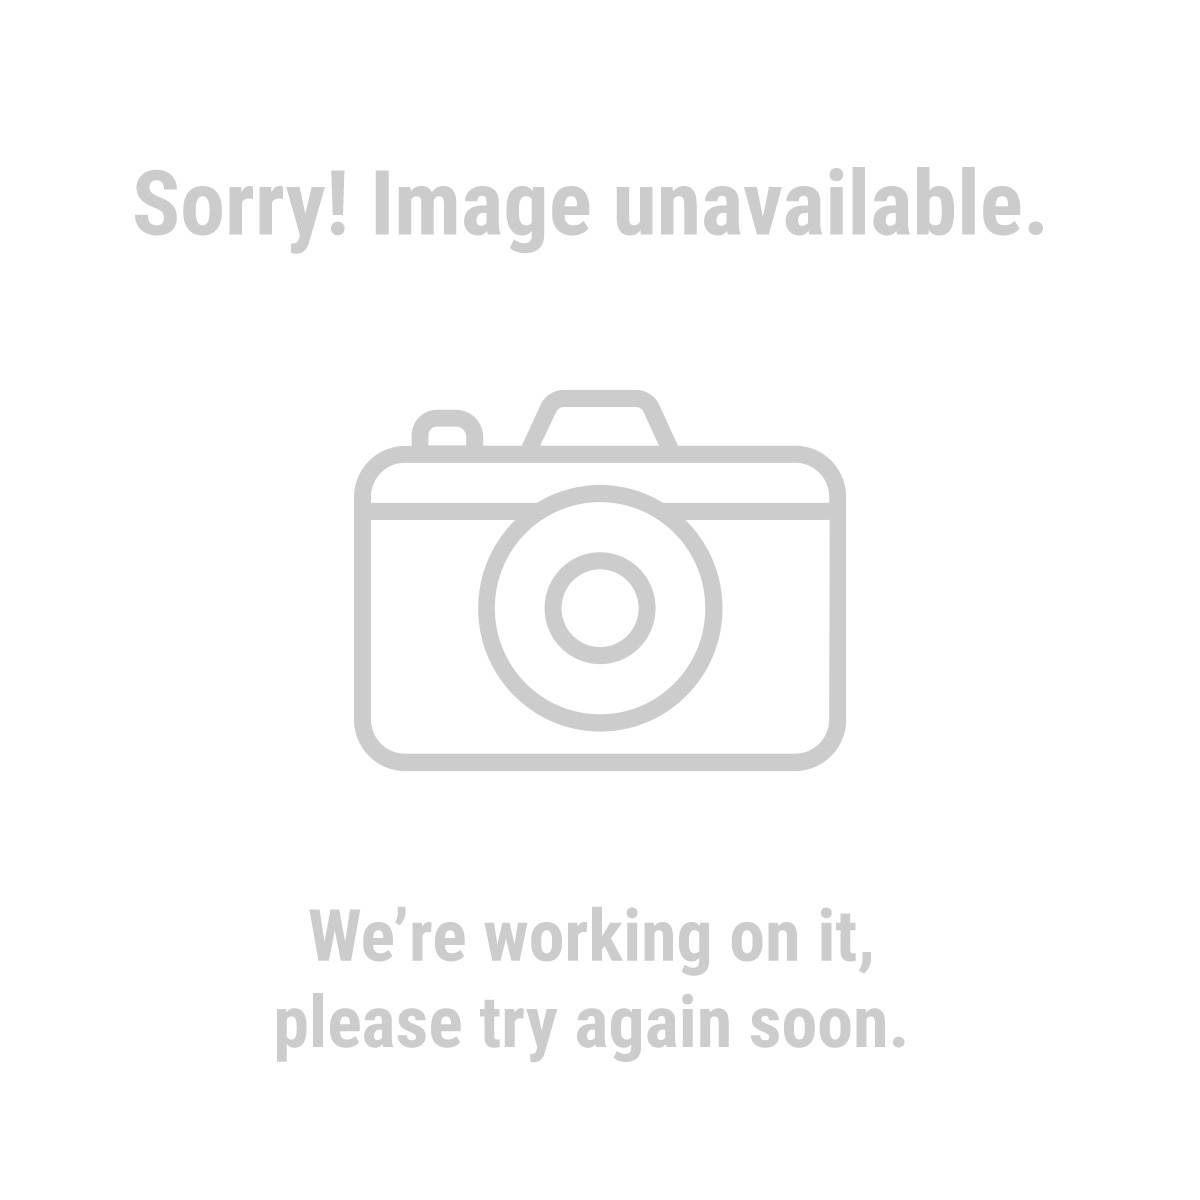 Western Safety 60792 Industrial Ear Muffs